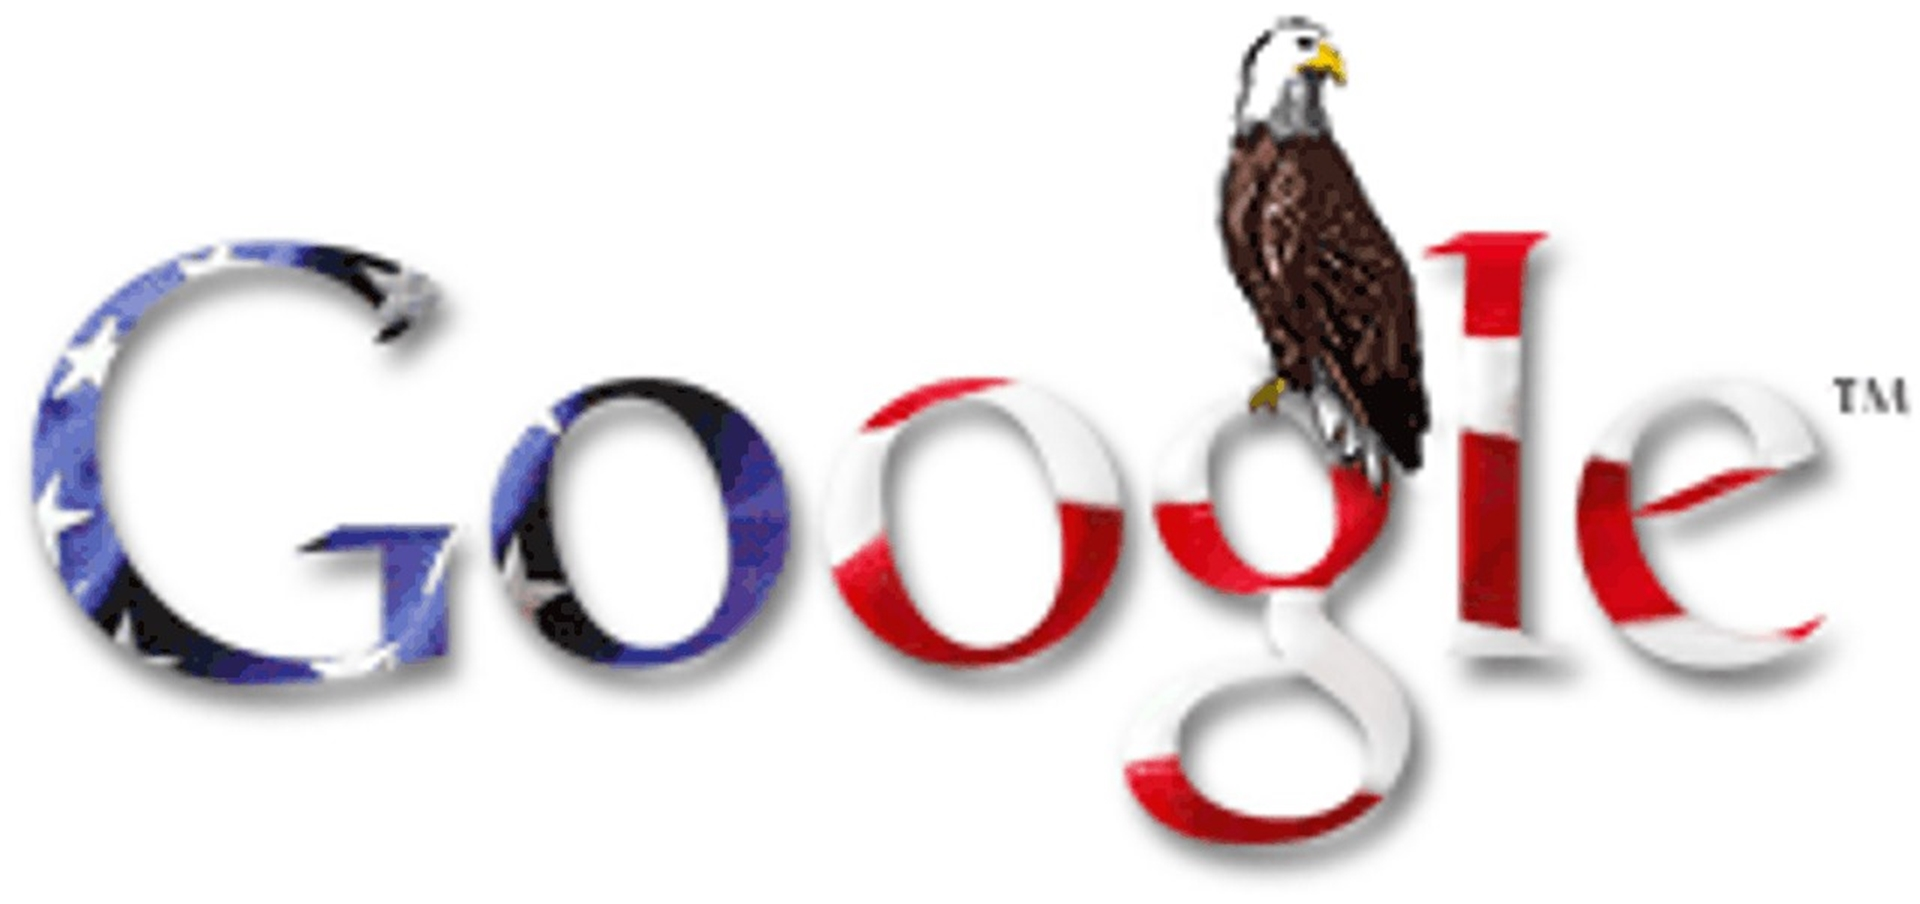 4th of July Google Doodle 2004